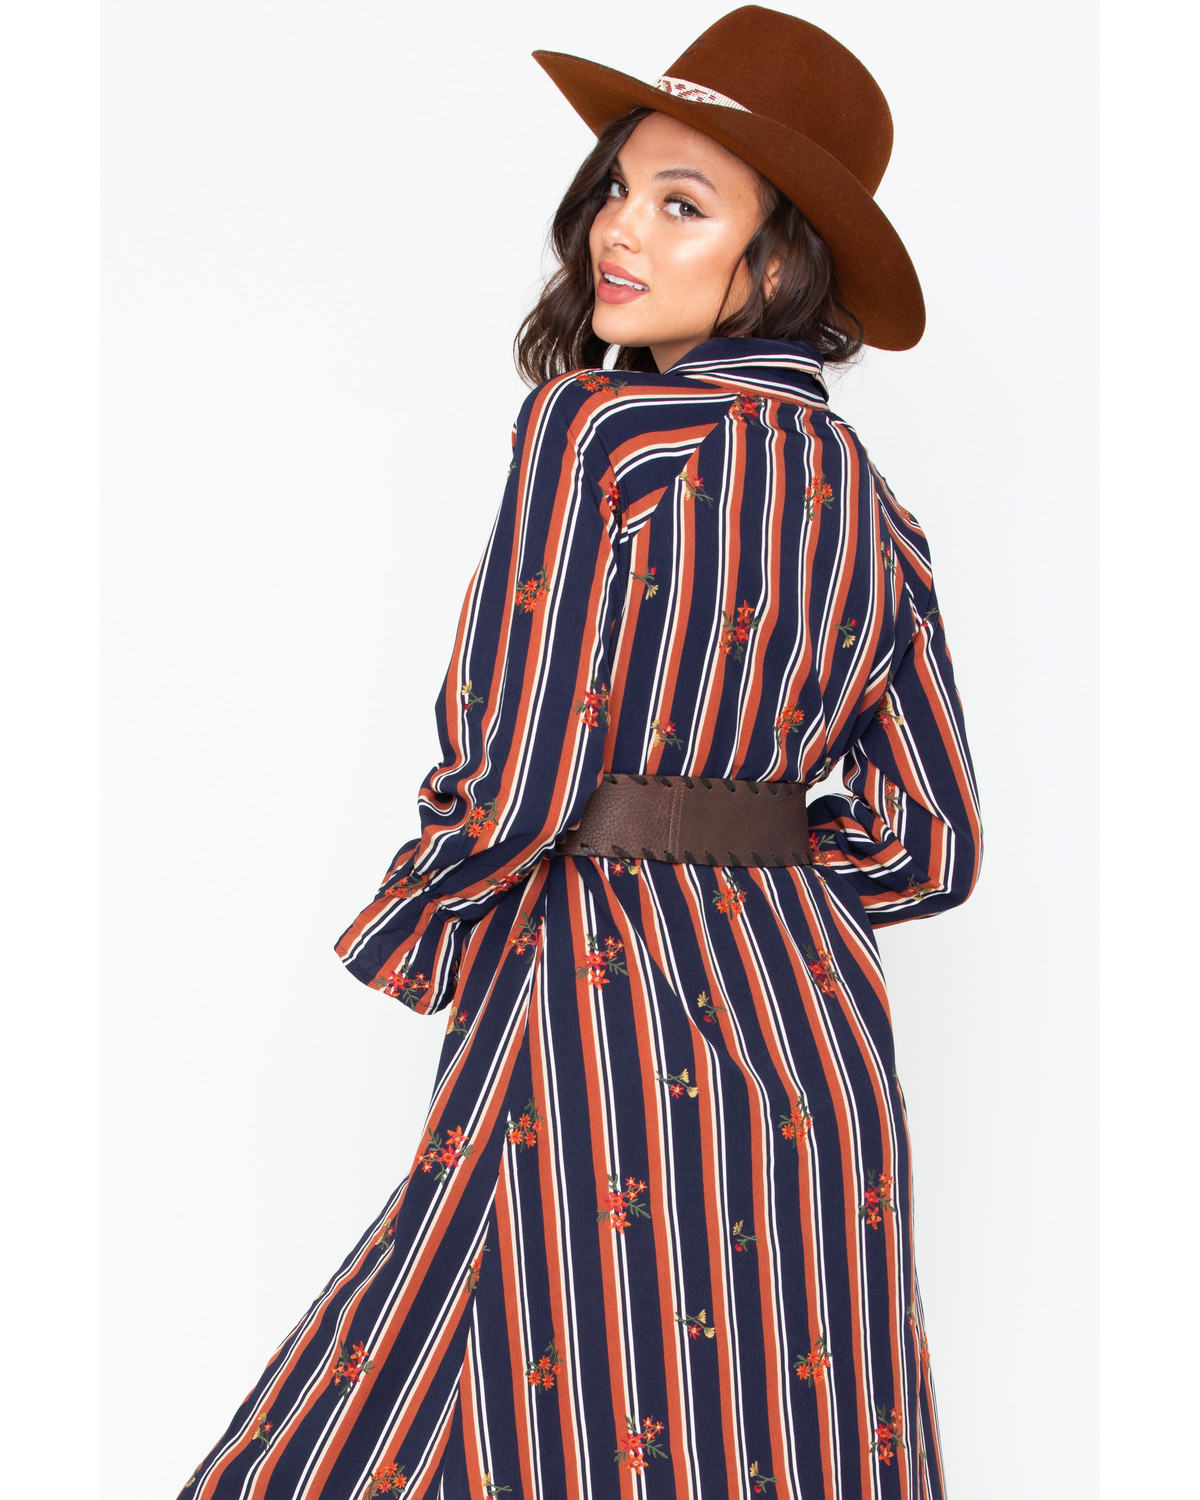 c4bd4f9acb Miss Me Women s Striped Button Down Shirt Dress - Country Outfitter